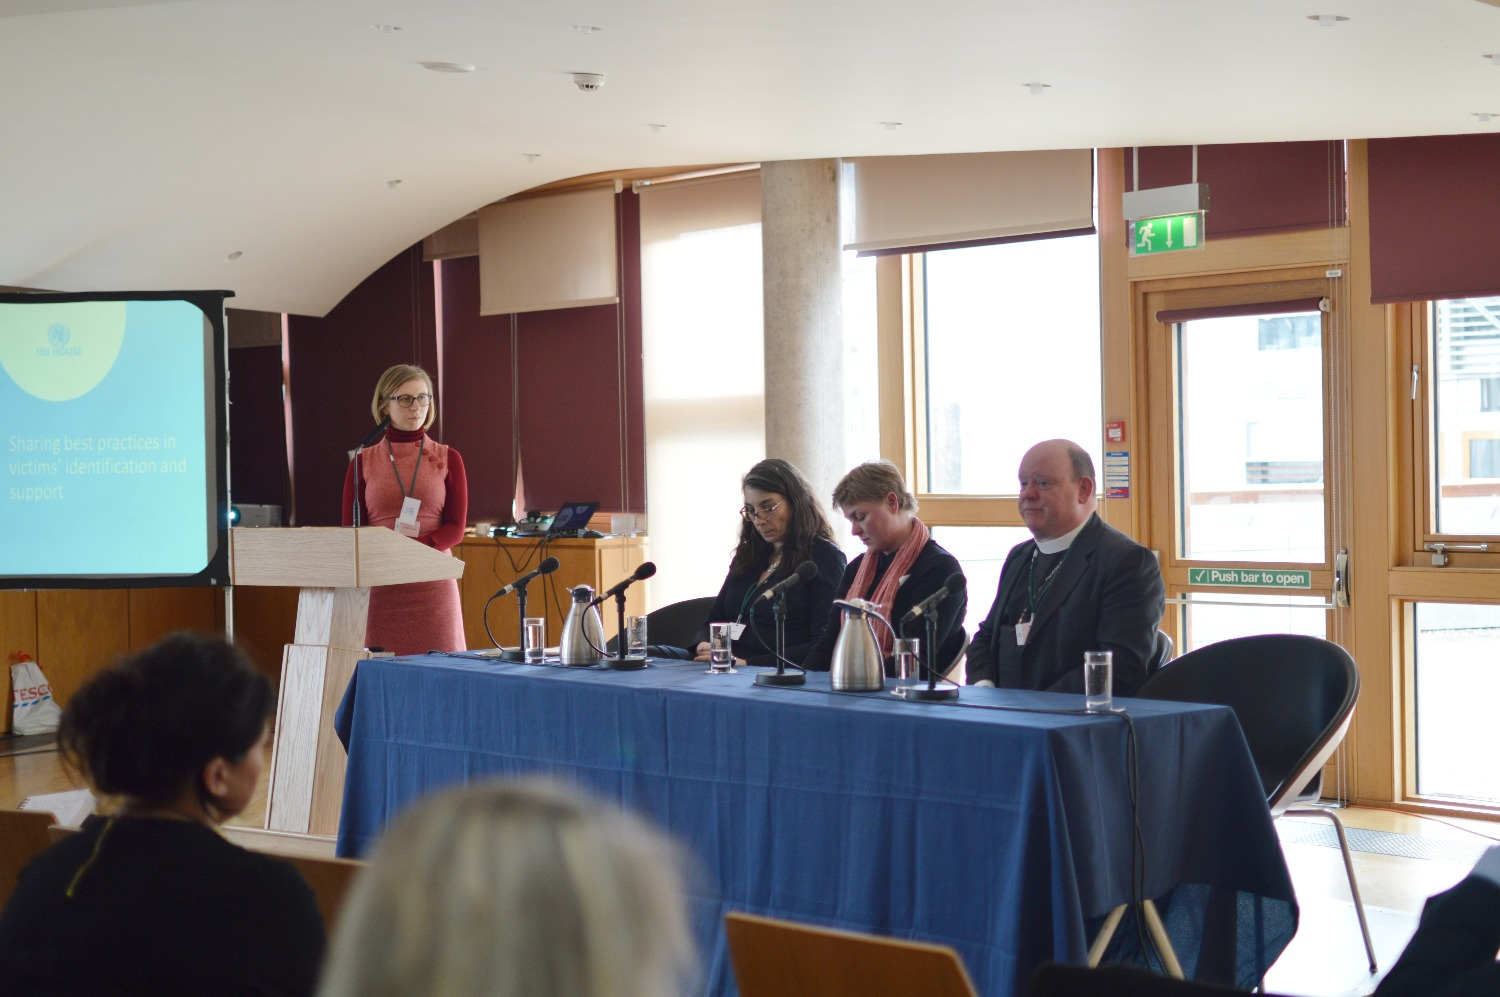 Speakers Bronagh Andrew, Lucina Hackman, and Right Reverend Derek Browning take questions.